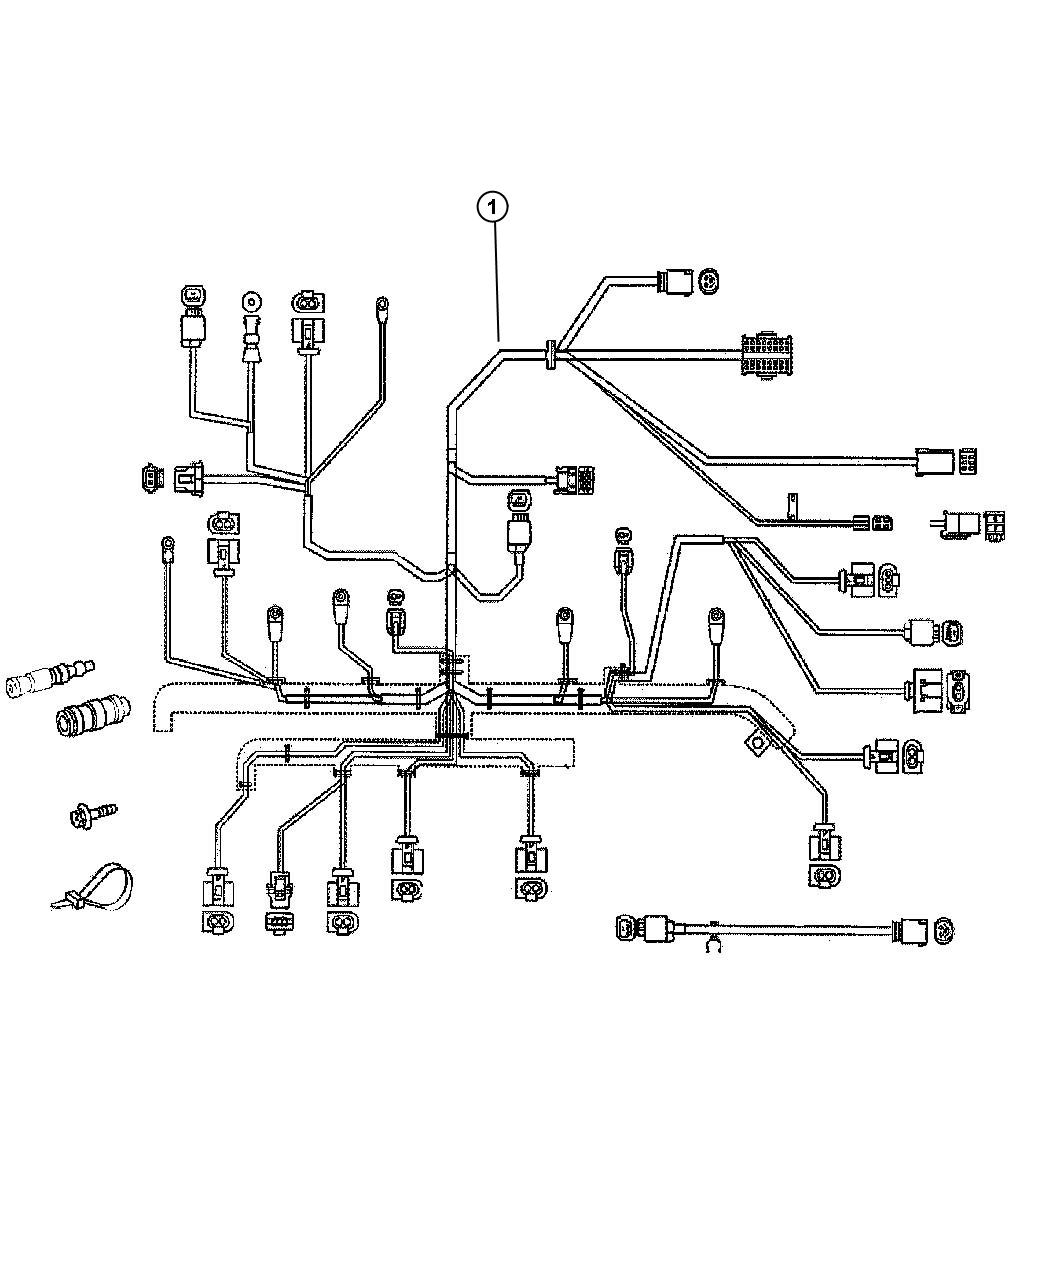 2010 Jeep Patriot Wiring. Engine. Tag, related, mopar